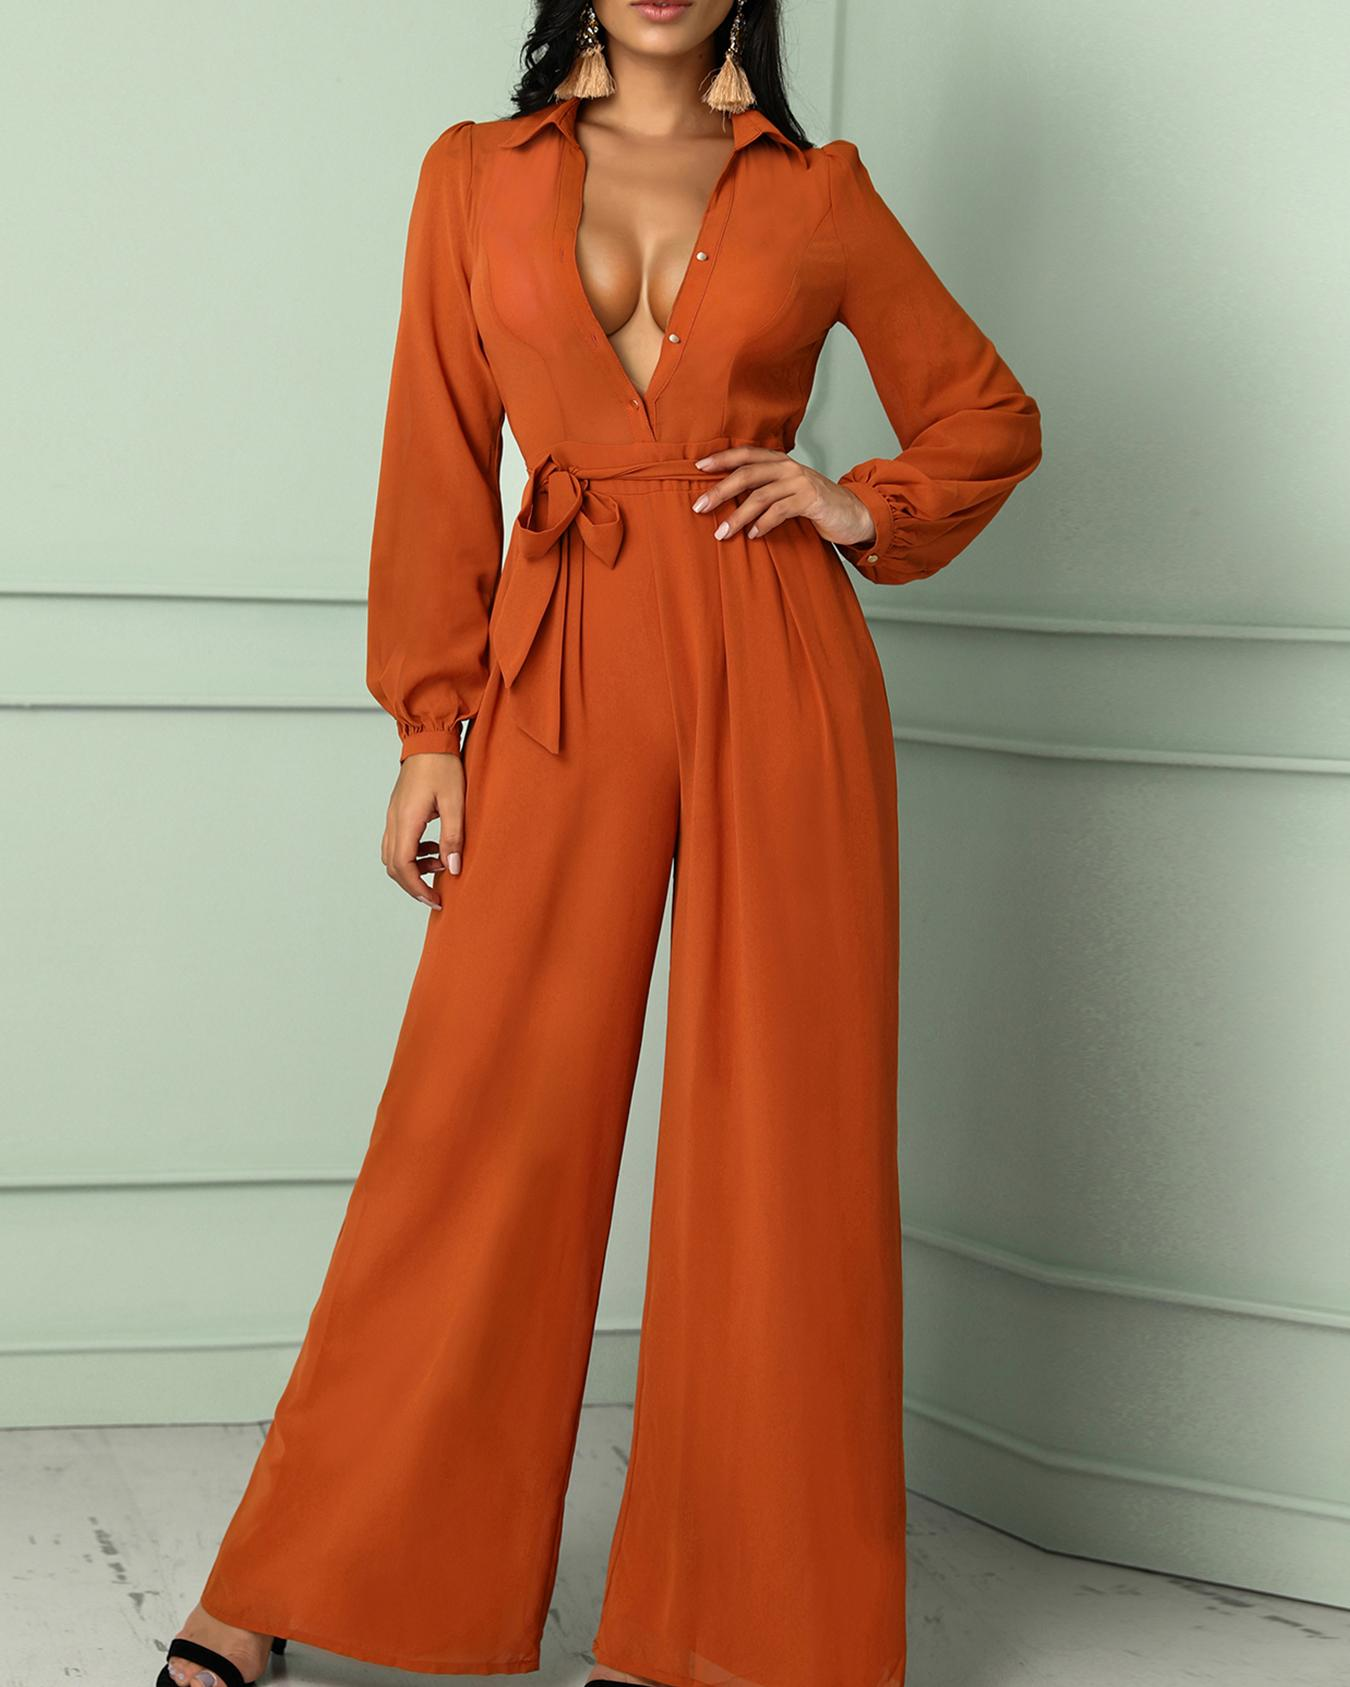 f68028fa143 Solid Long Sleeve Belted Wide Leg Jumpsuit Online. Discover hottest trend  fashion at chicme.com